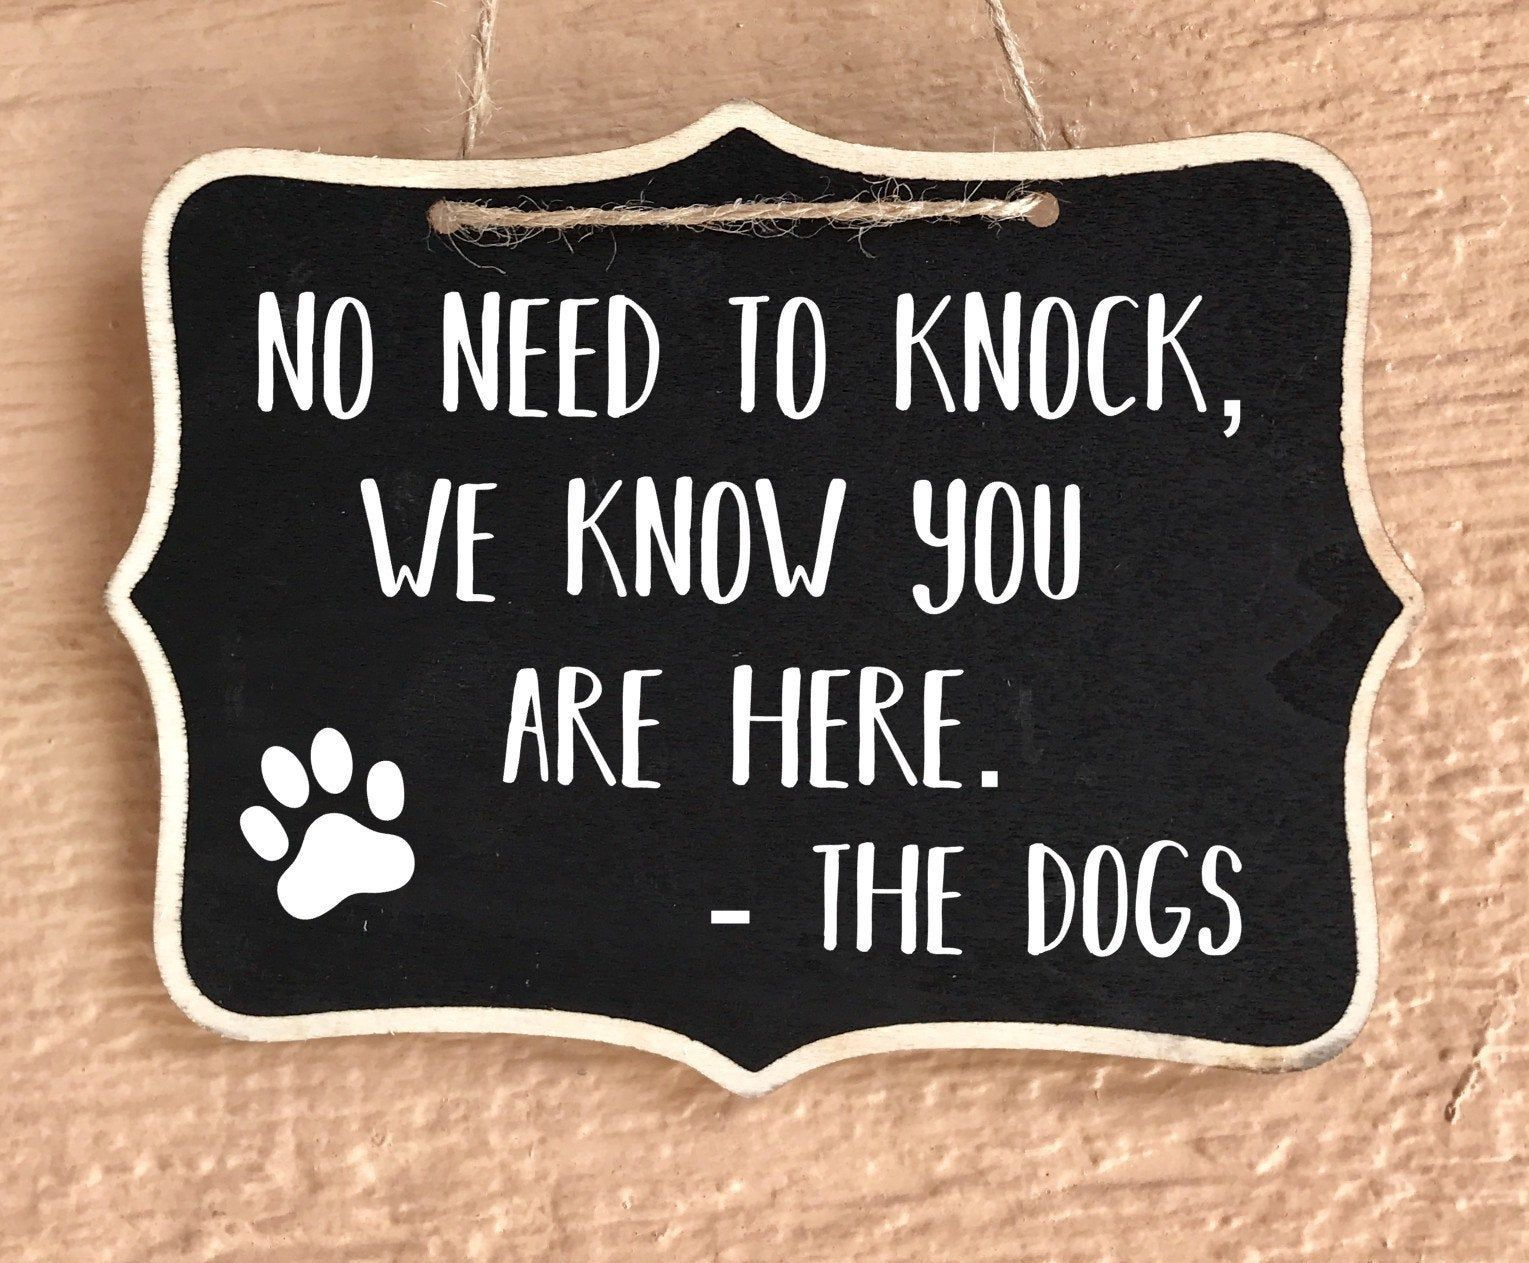 No Need To Knock We Know You Are Here - Front Door Sign - Dog Lover Gift - No Soliciting - Housewarming - Funny - Dog Door Sign